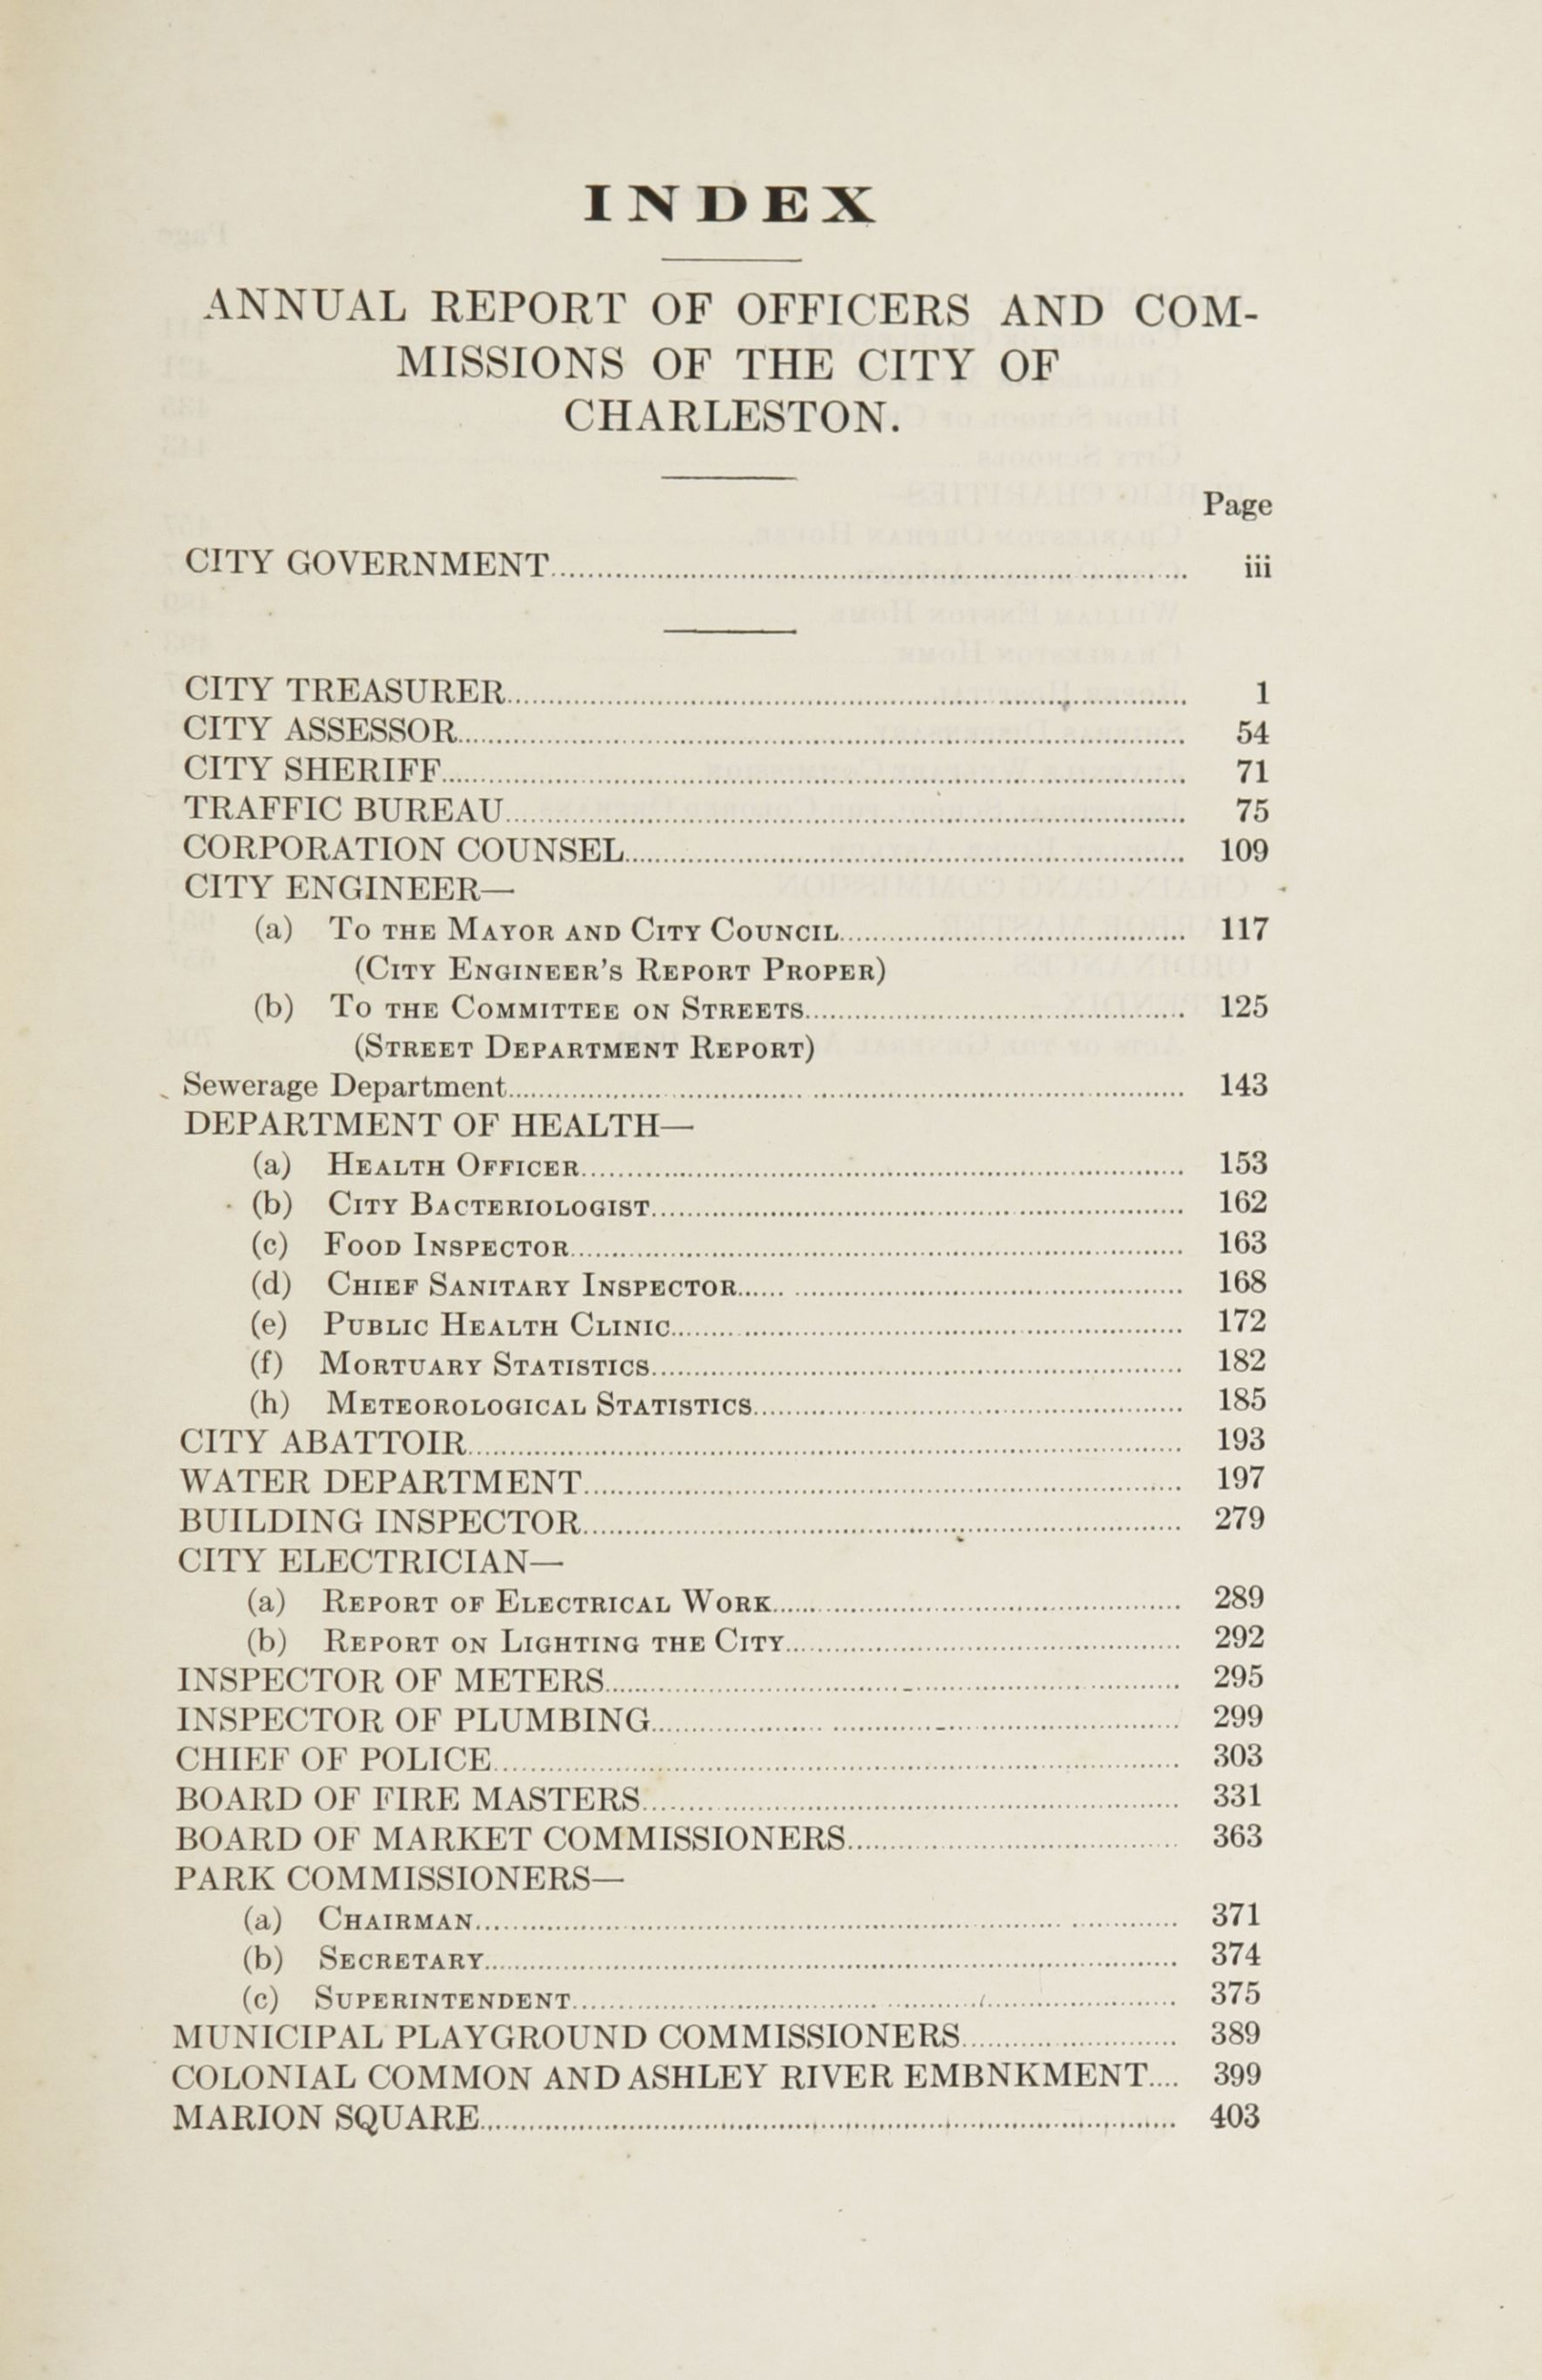 Charleston Yearbook, 1922, page xxiii